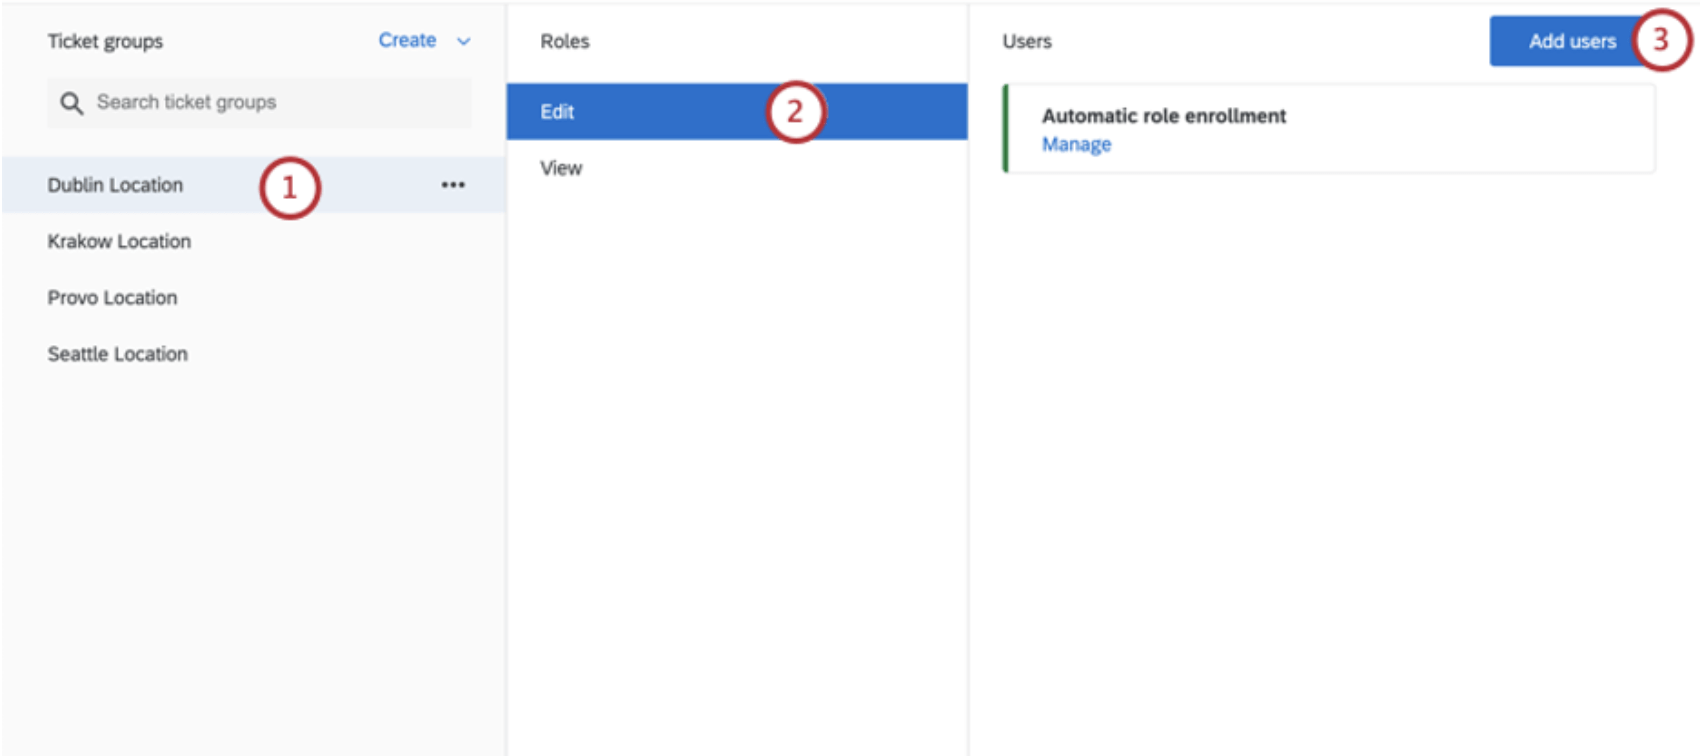 Group selected left, role selected middle, users added on right